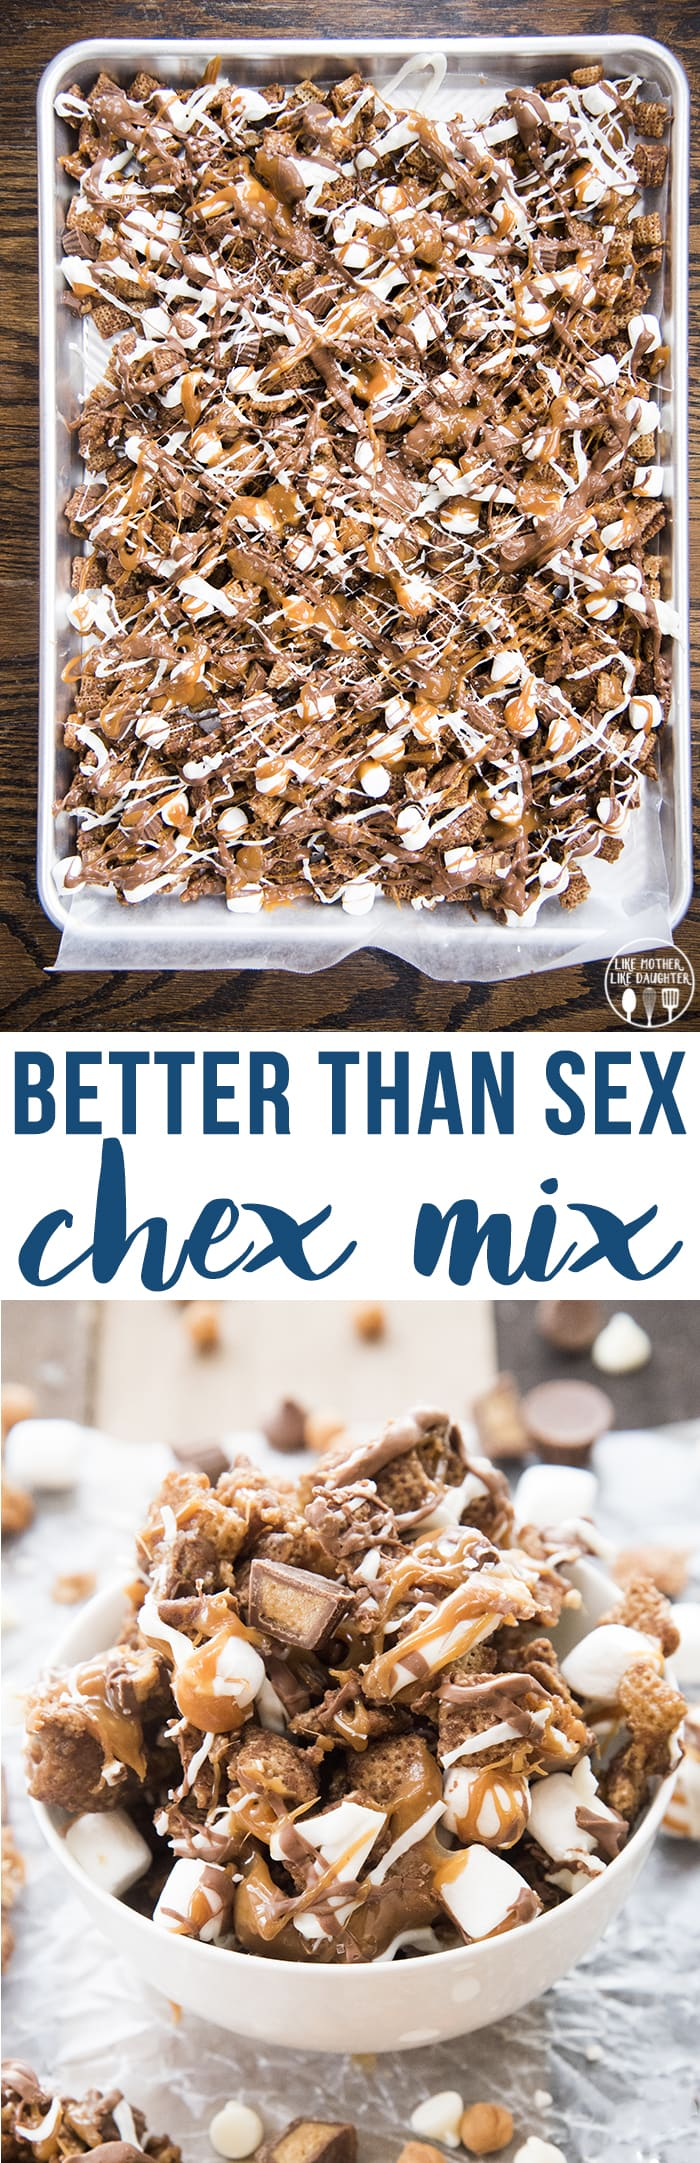 Better than Sex Chex mix is an amazing sweet chex mix, with chocolate chex, melted caramel, peanut butter cups, marshmallows, and lots of chocolate! Its irresistible!